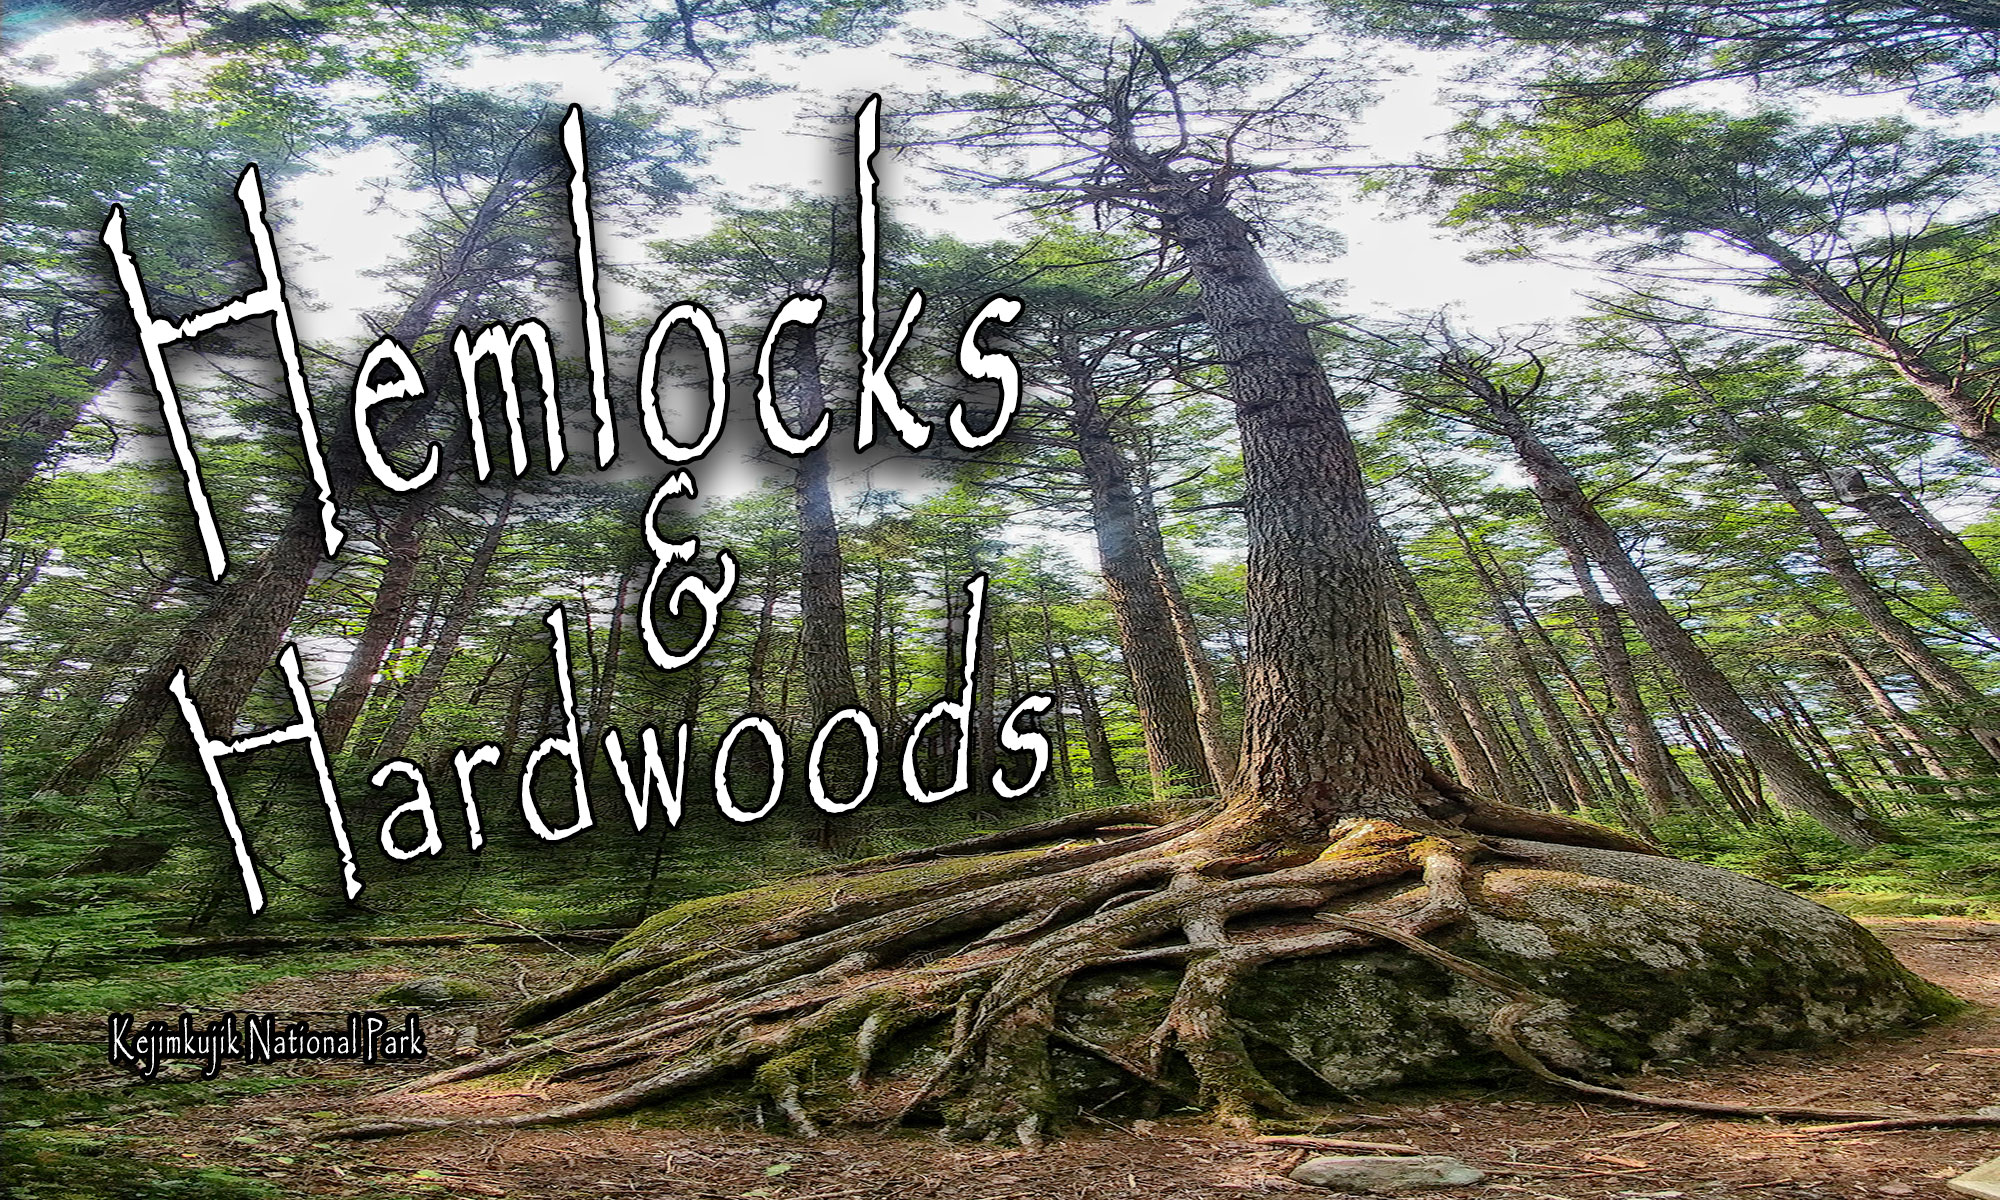 Hemlocks and Hardwoods Trail